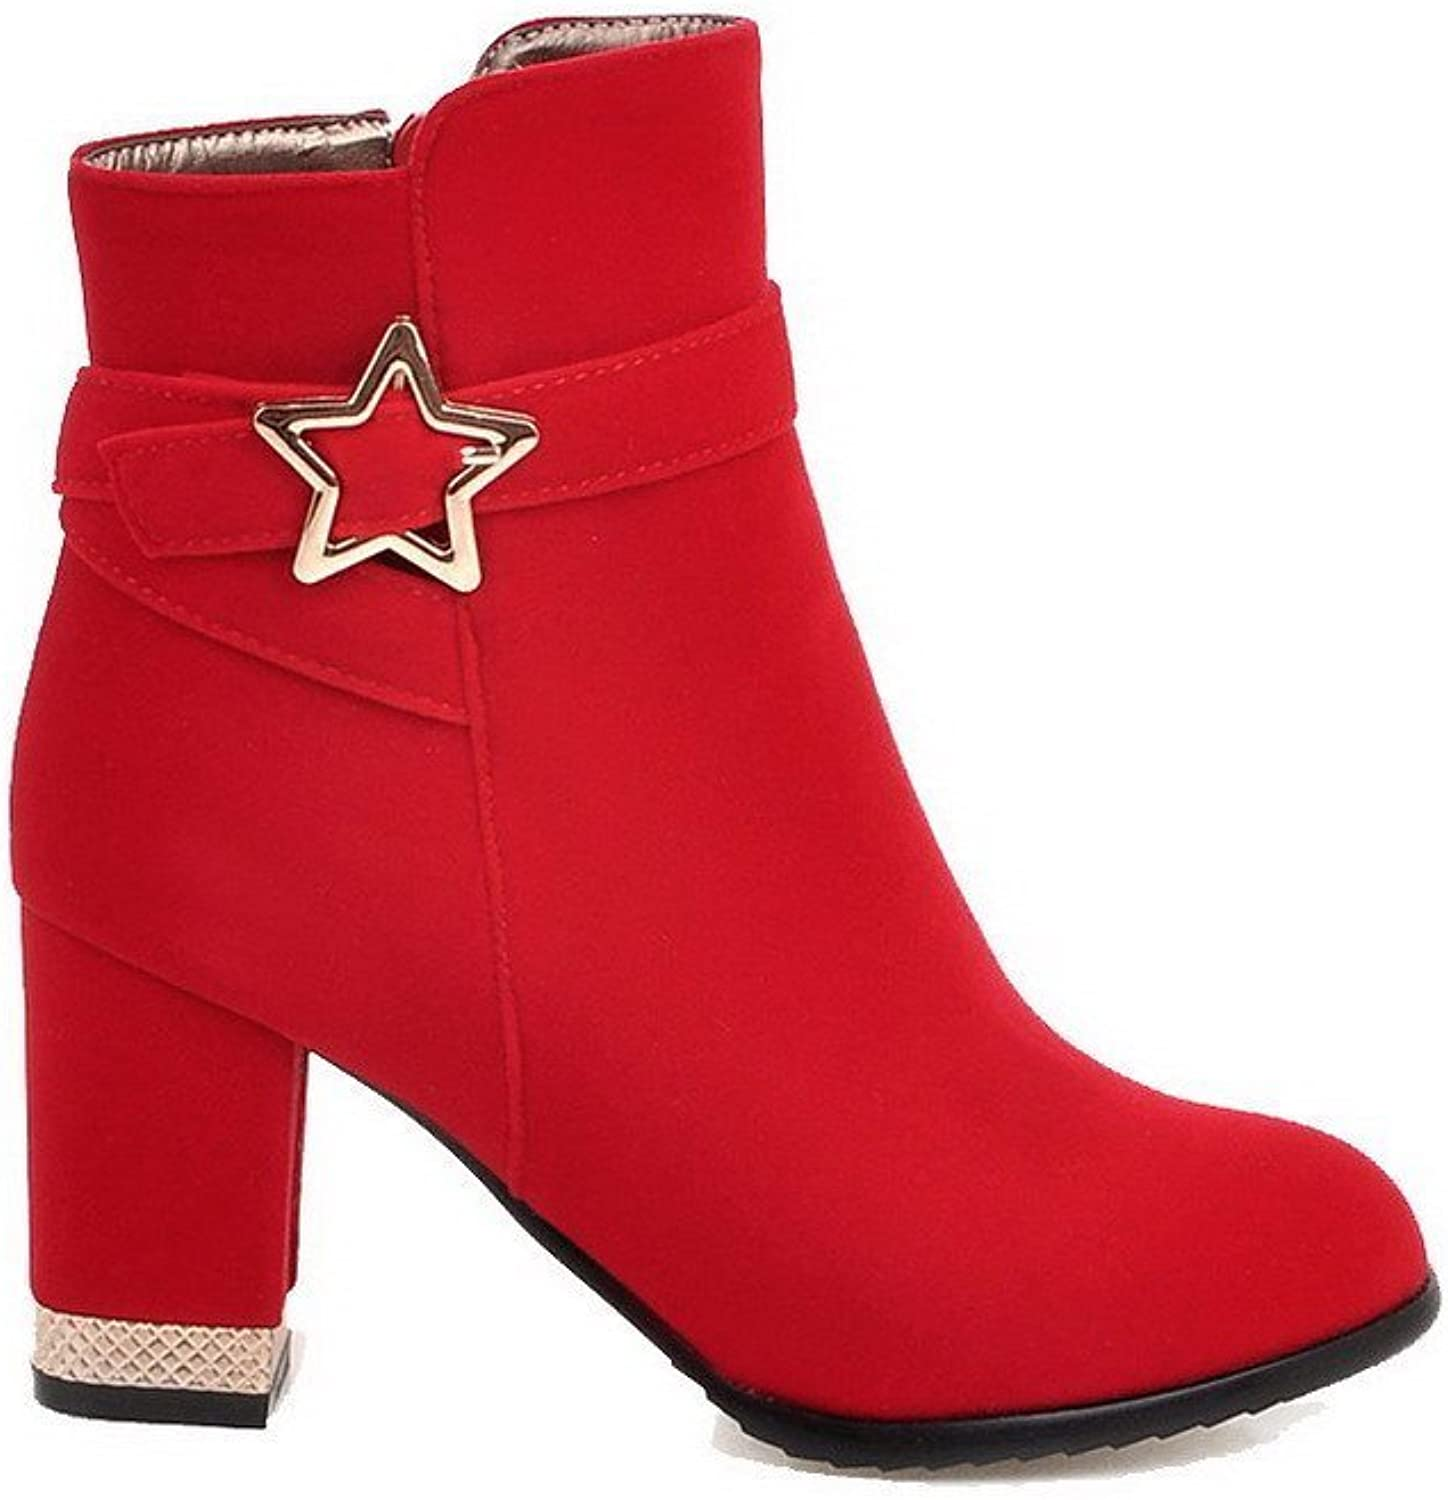 True Meaning Nice Women's Frosted Zipper Round Closed Toe High-Heels Low-Top Boots